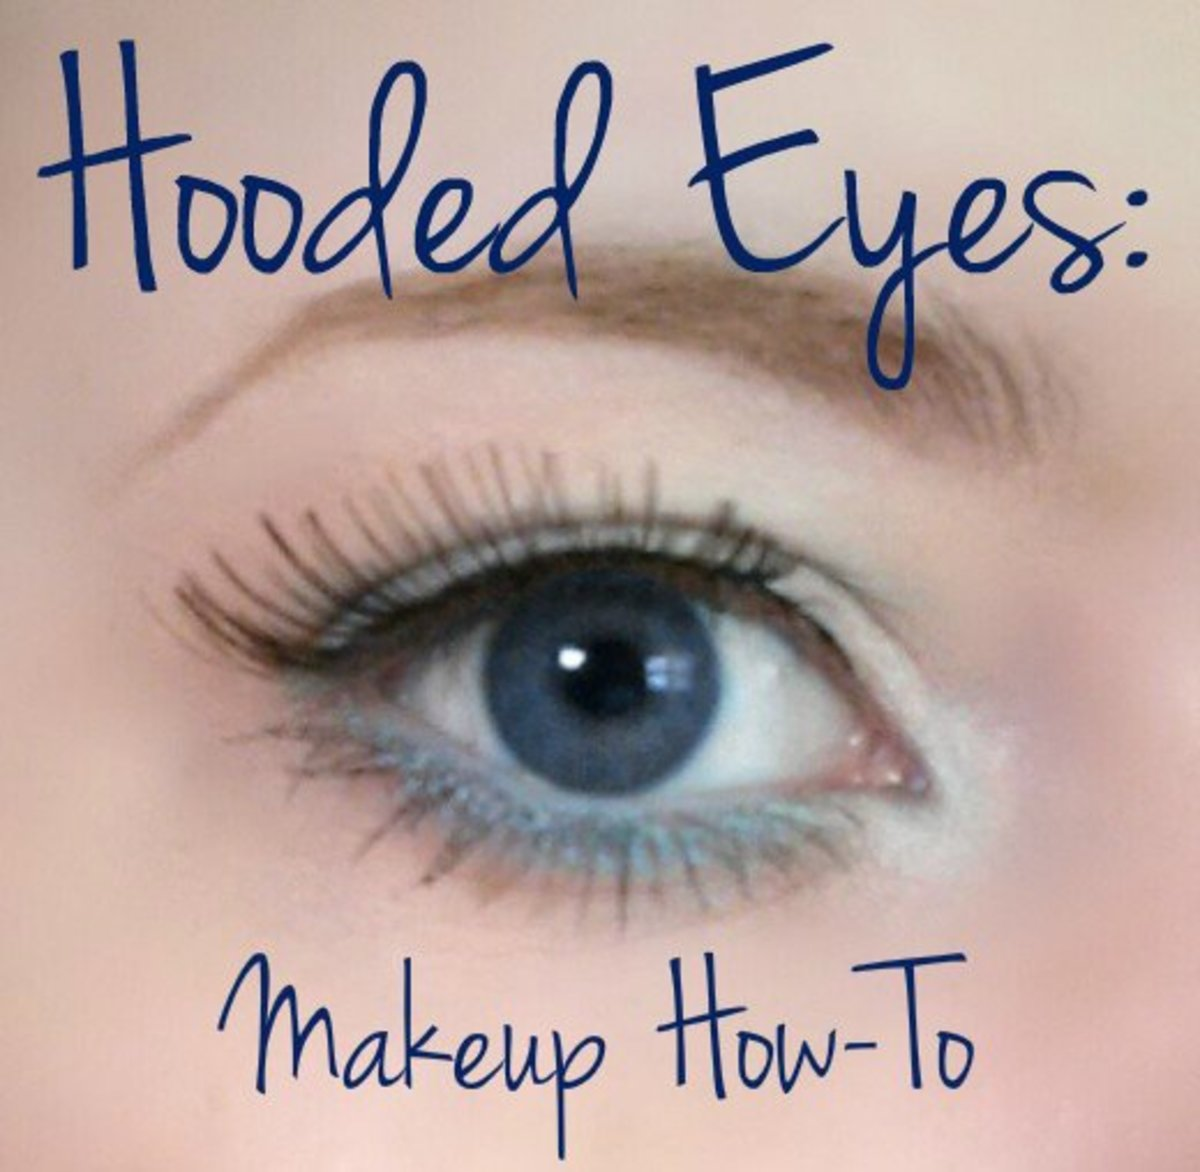 As you can see here, I have hooded eyes myself.